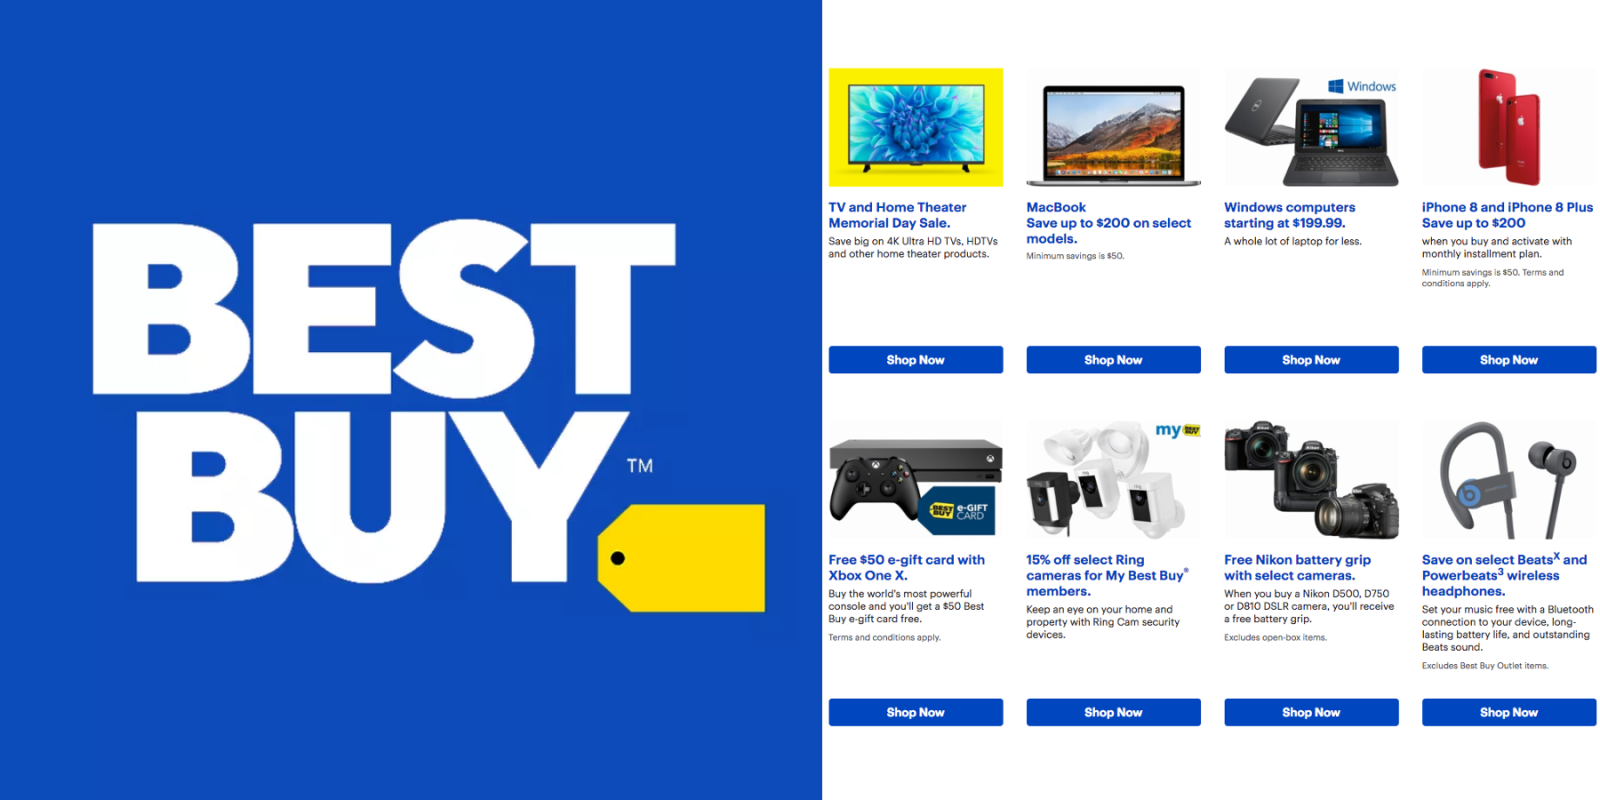 best buy early memorial day sale homepod deals 250 off macbook hdtvs 300 off more - Best Buy Day After Christmas Sale